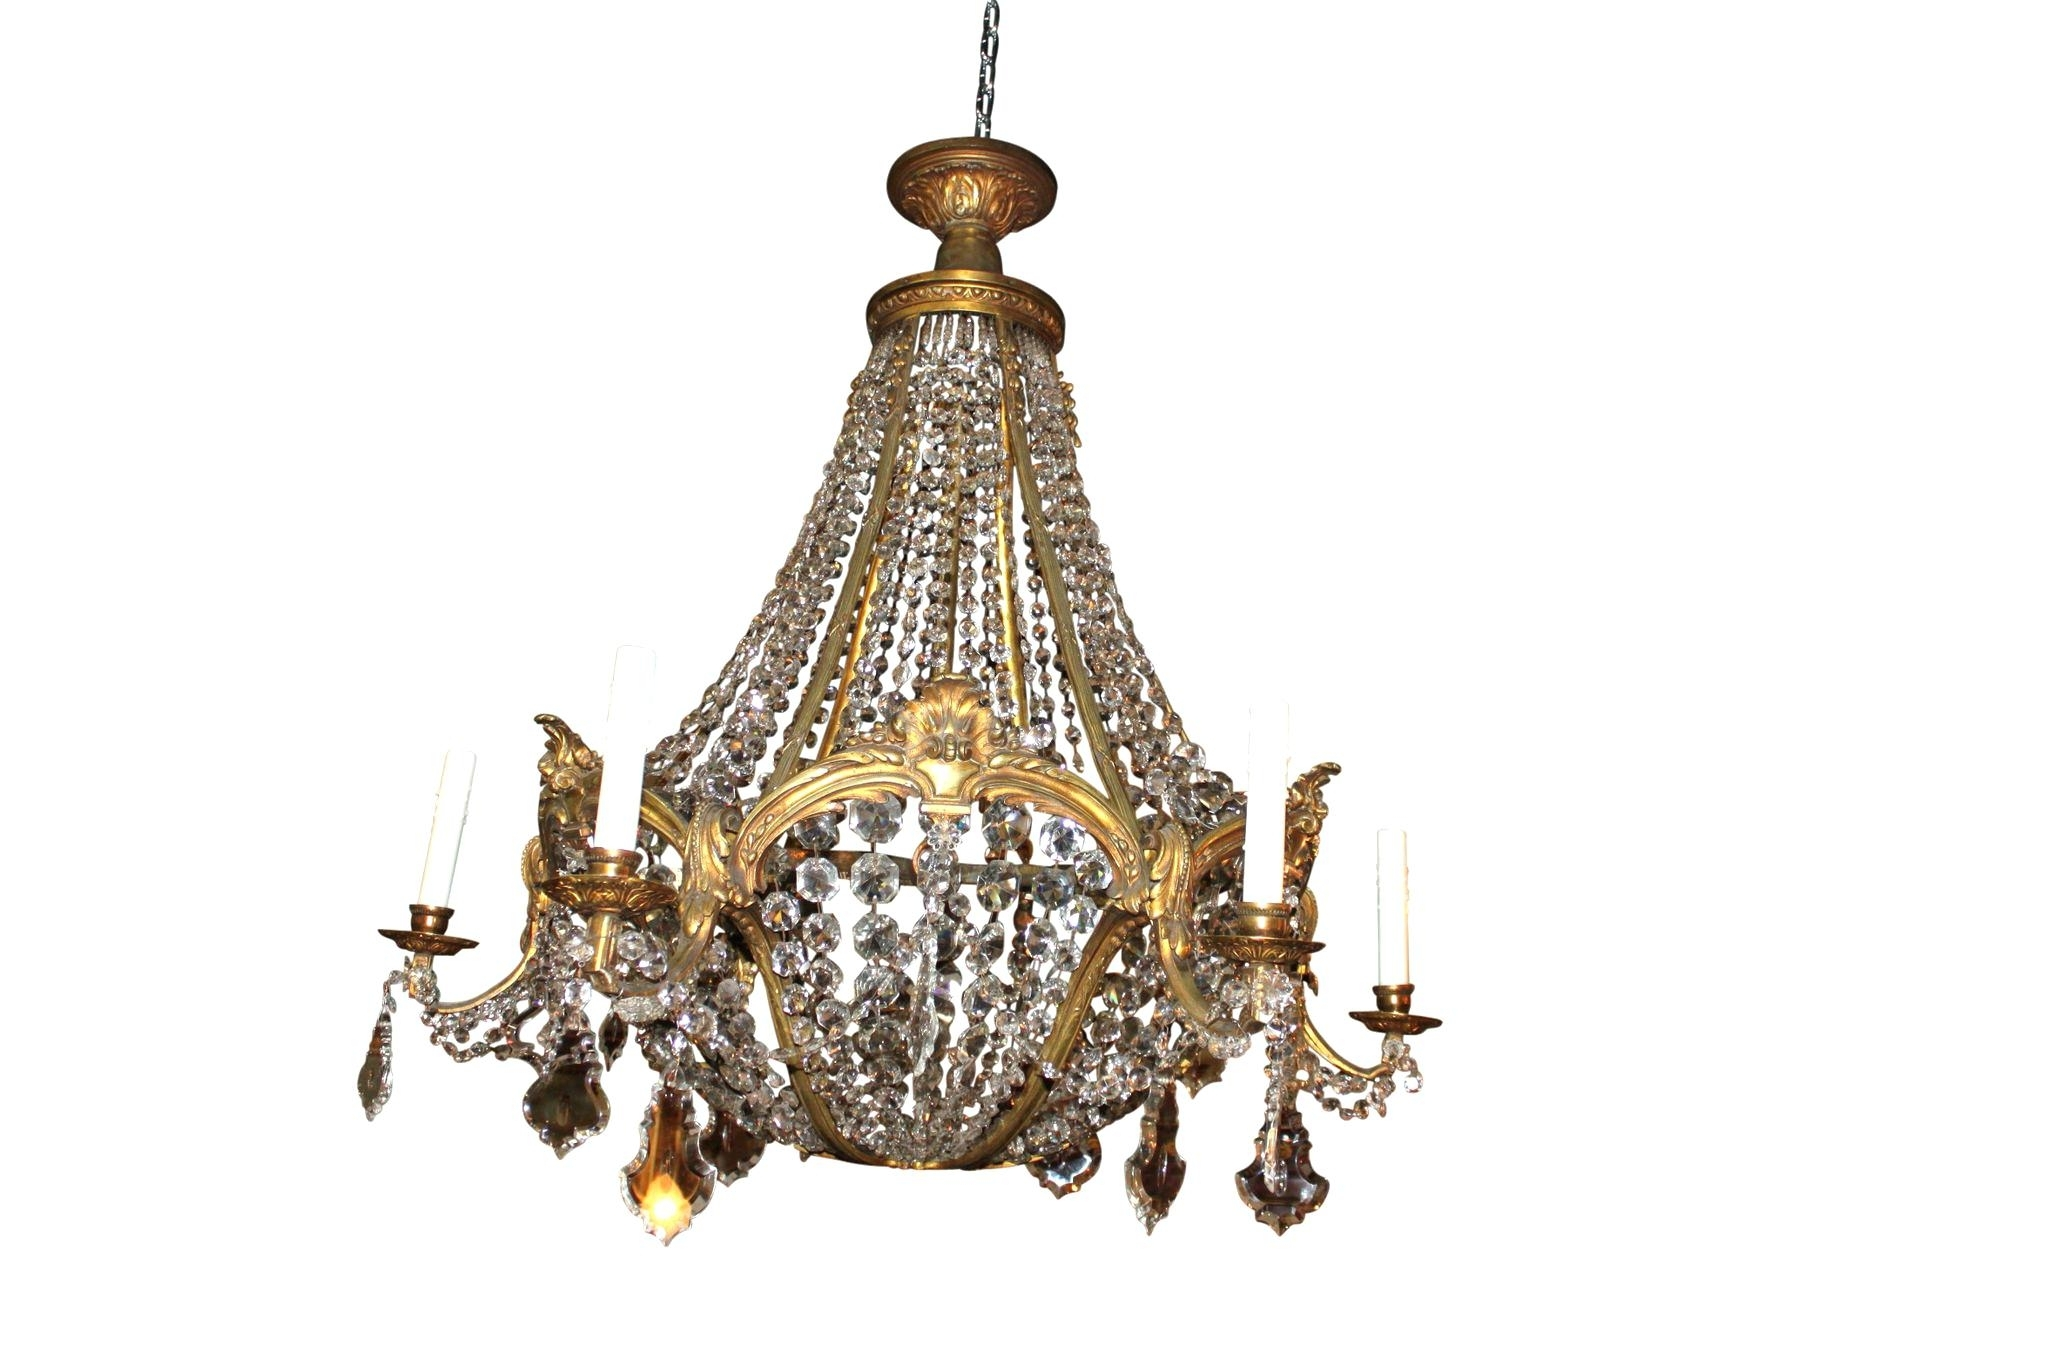 Current Vintage Chandeliers Inside Serena And Lily Chandelier Glass Antique Designs Home Types Of Image (View 18 of 20)